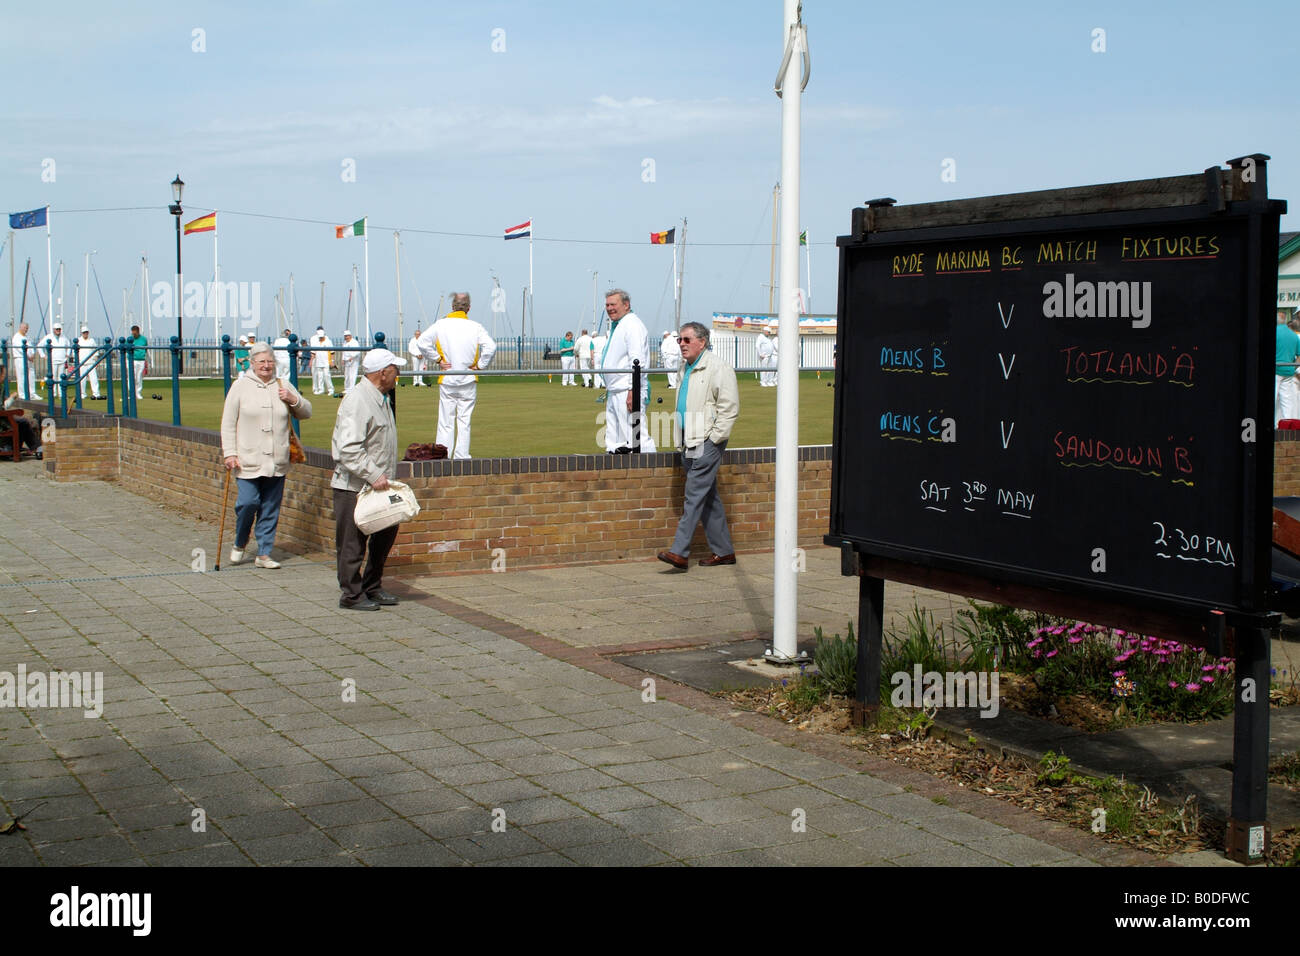 Bowls Match at Ryde Marina Bowls Club Isle of Wight South England UK Match Fixture Board and Spectators - Stock Image